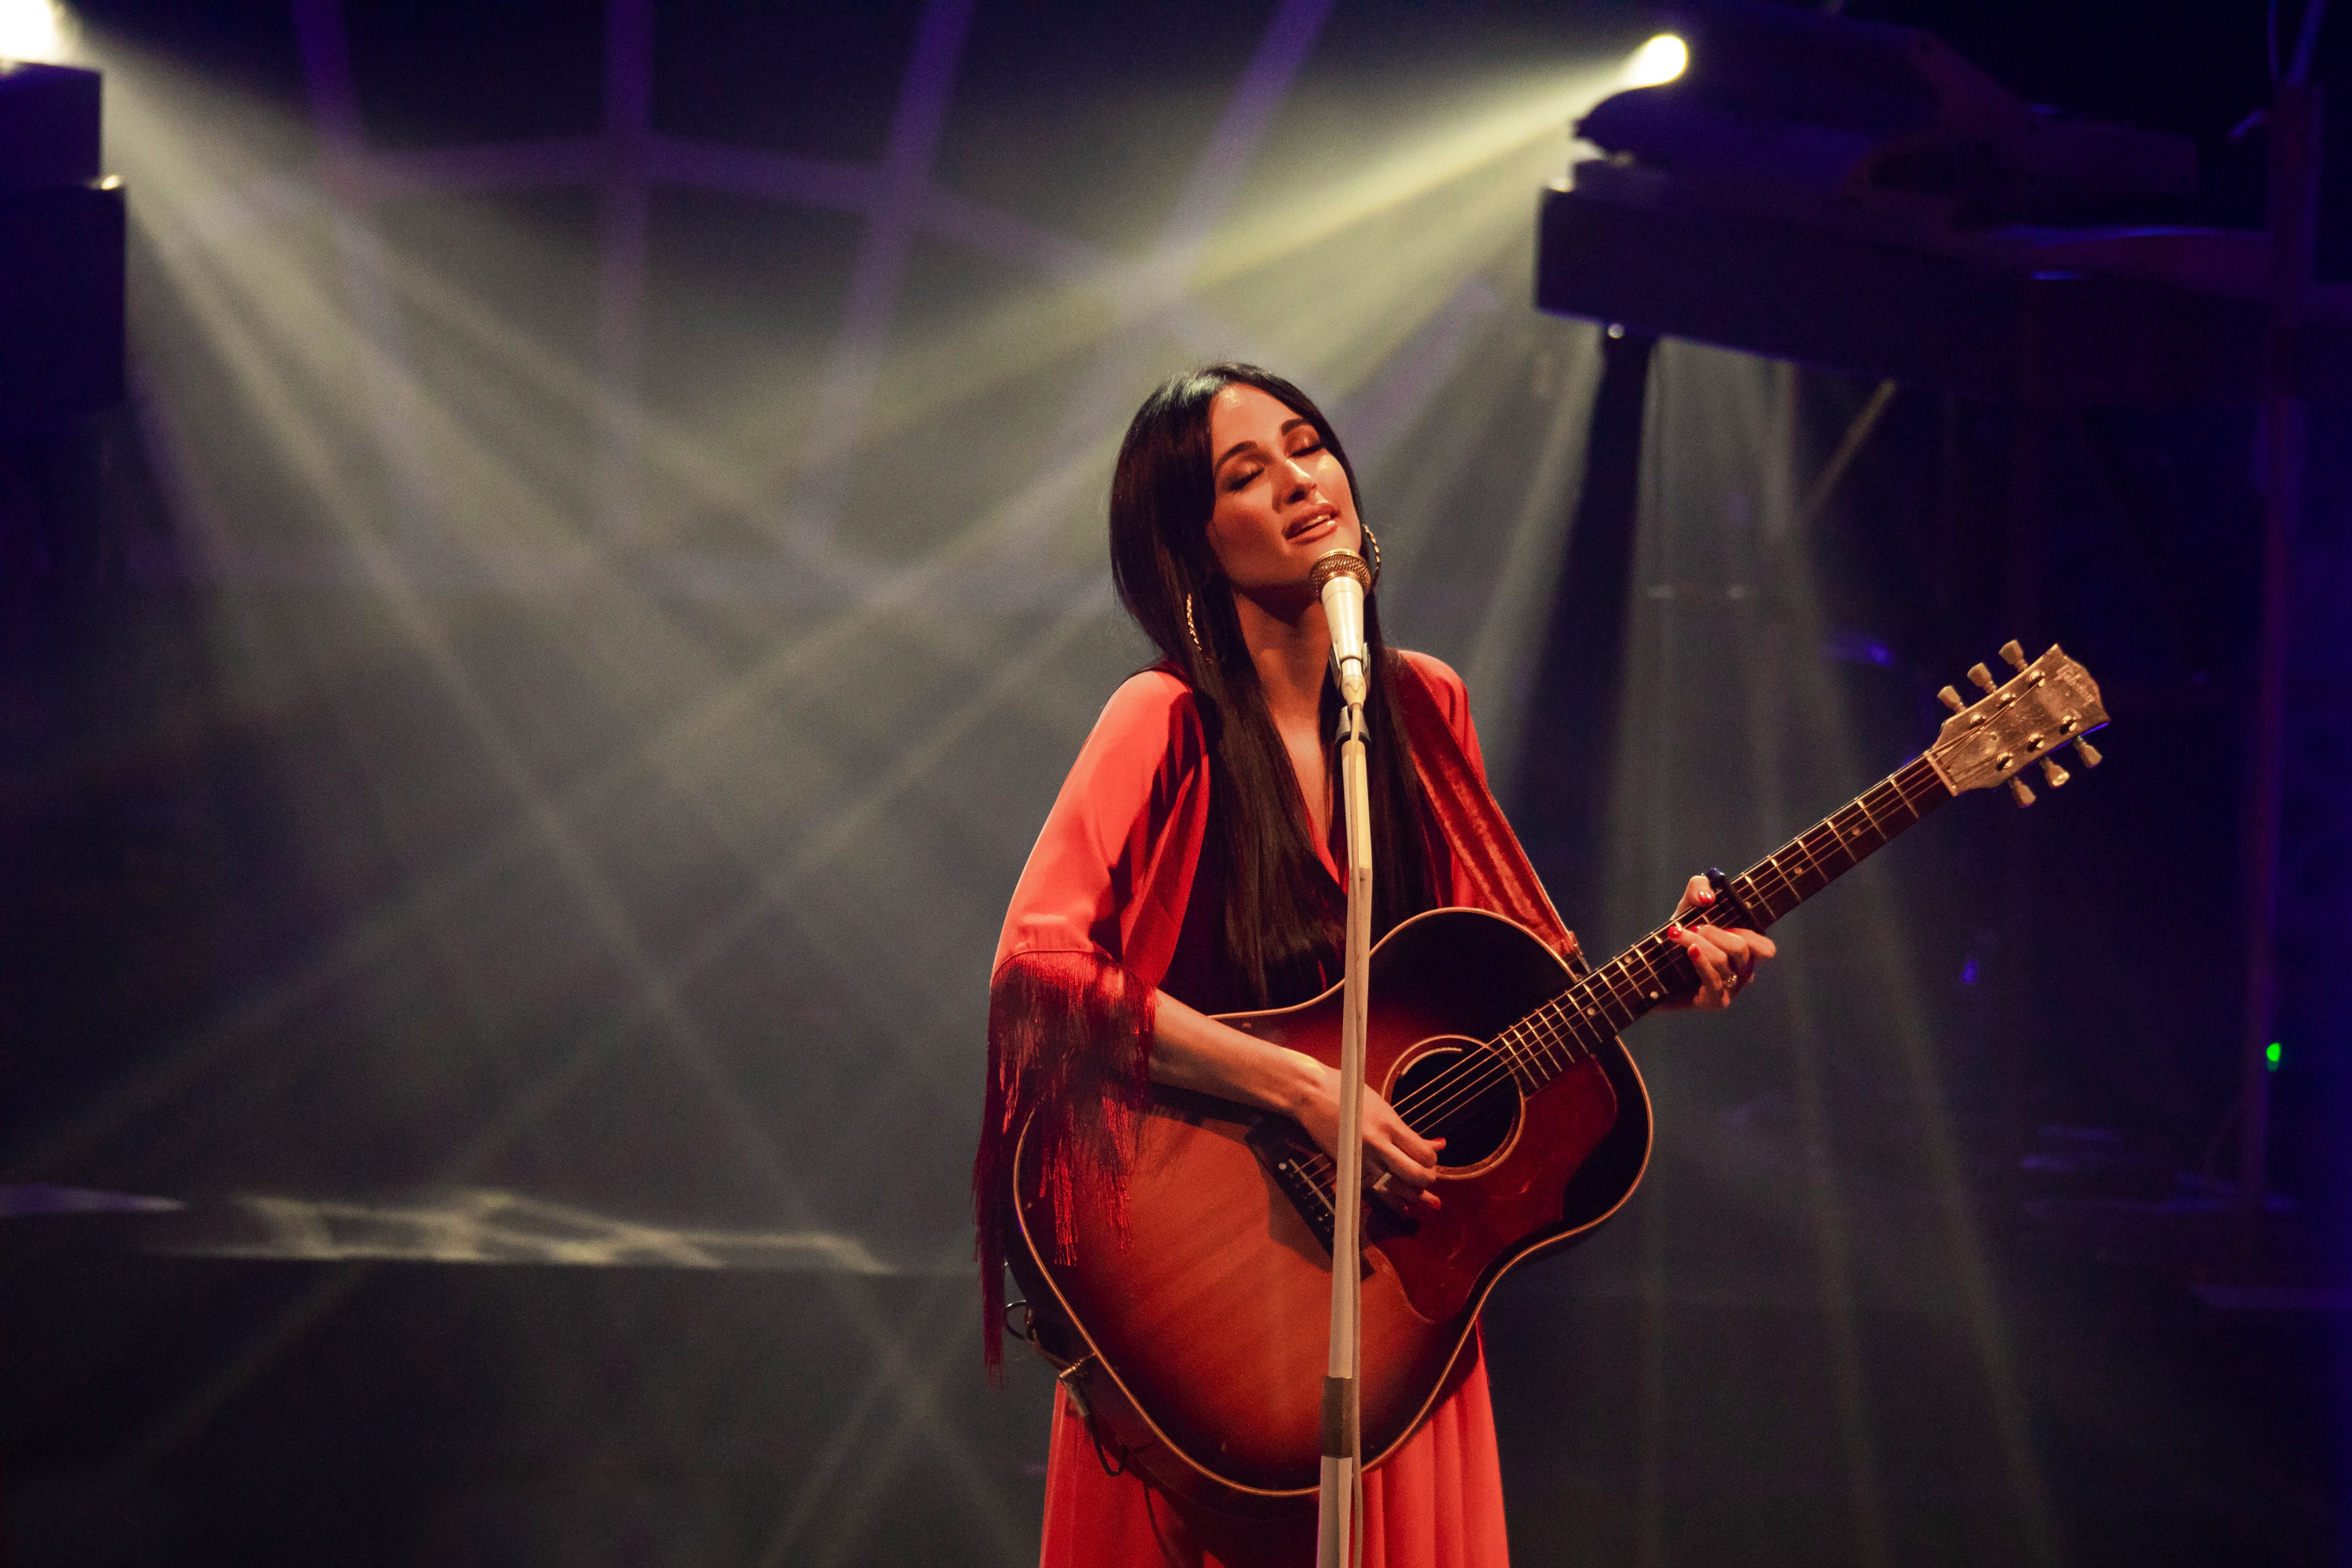 Kacey Musgraves 2019 Grammy performance